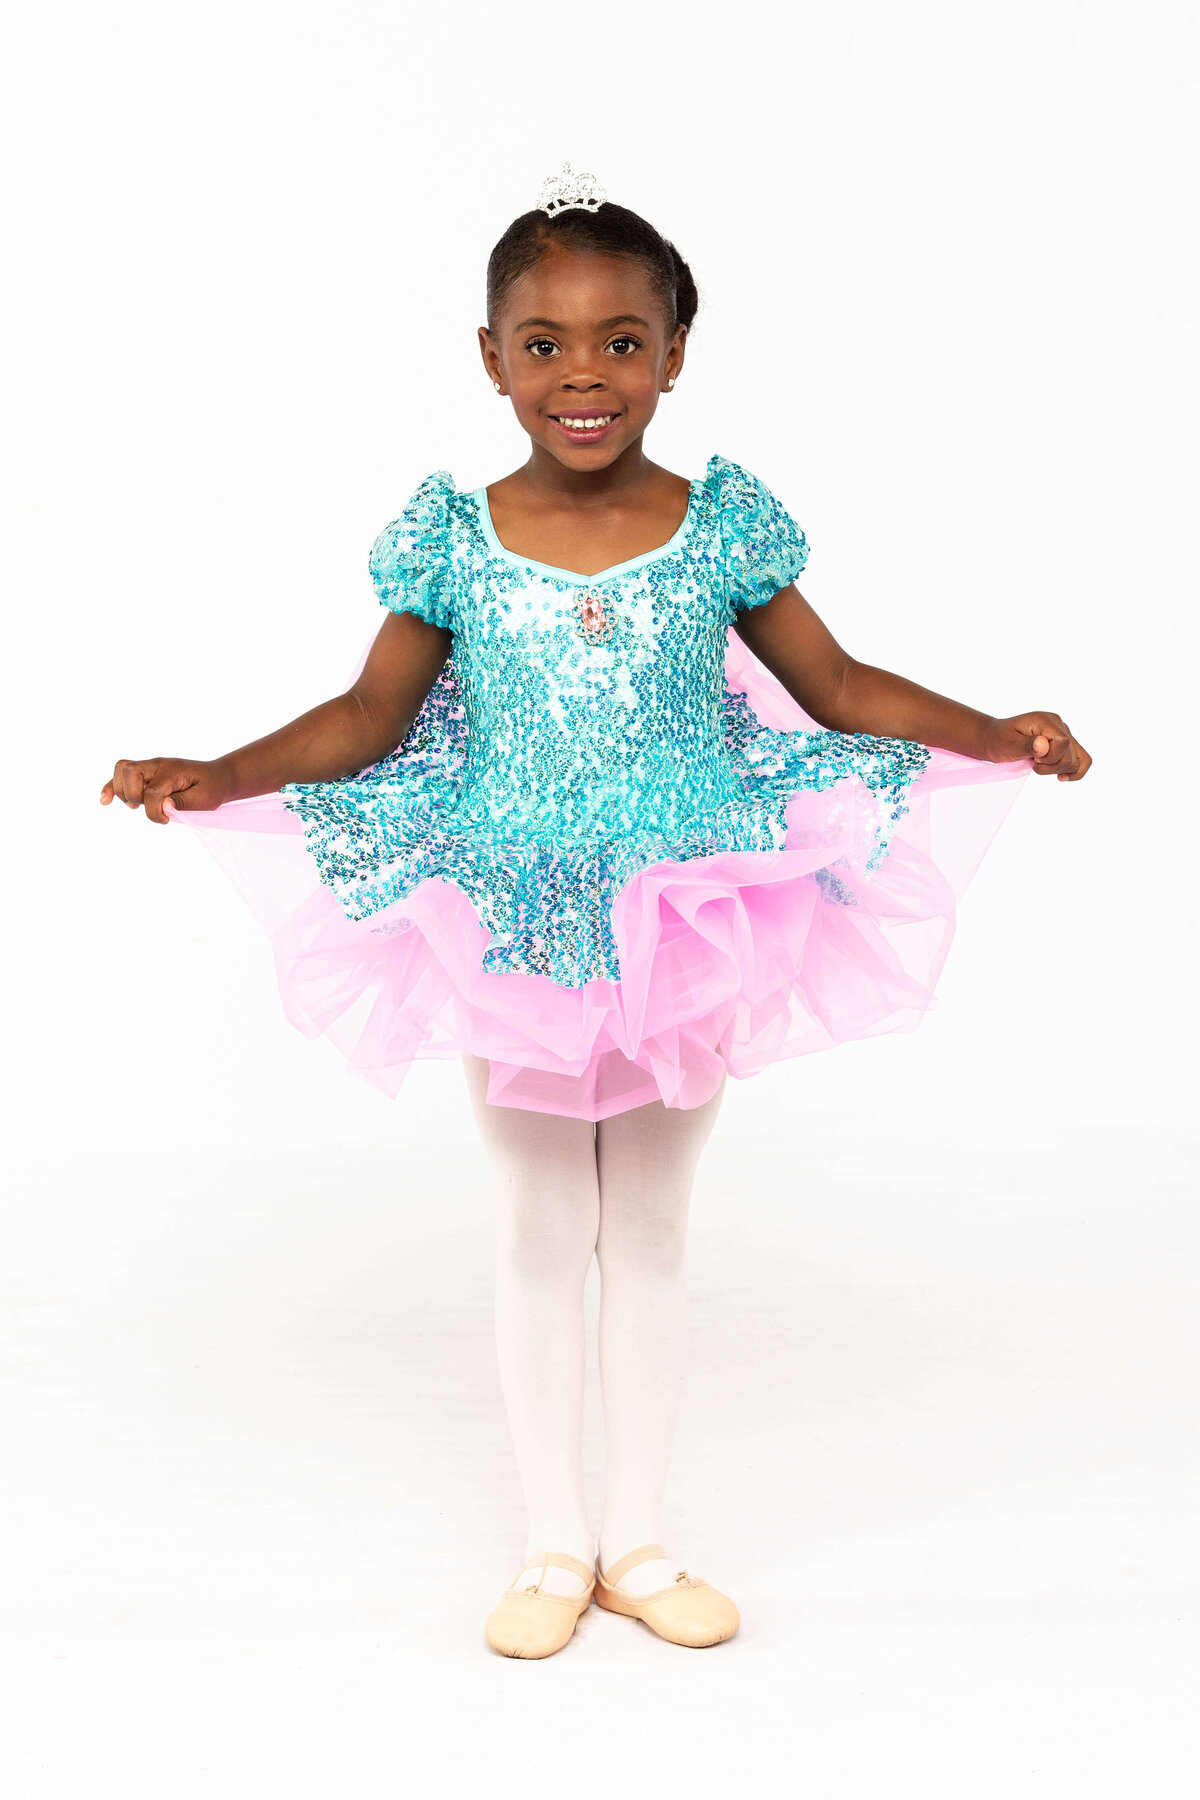 Girl dancer in blue and pink ballet tutu dress